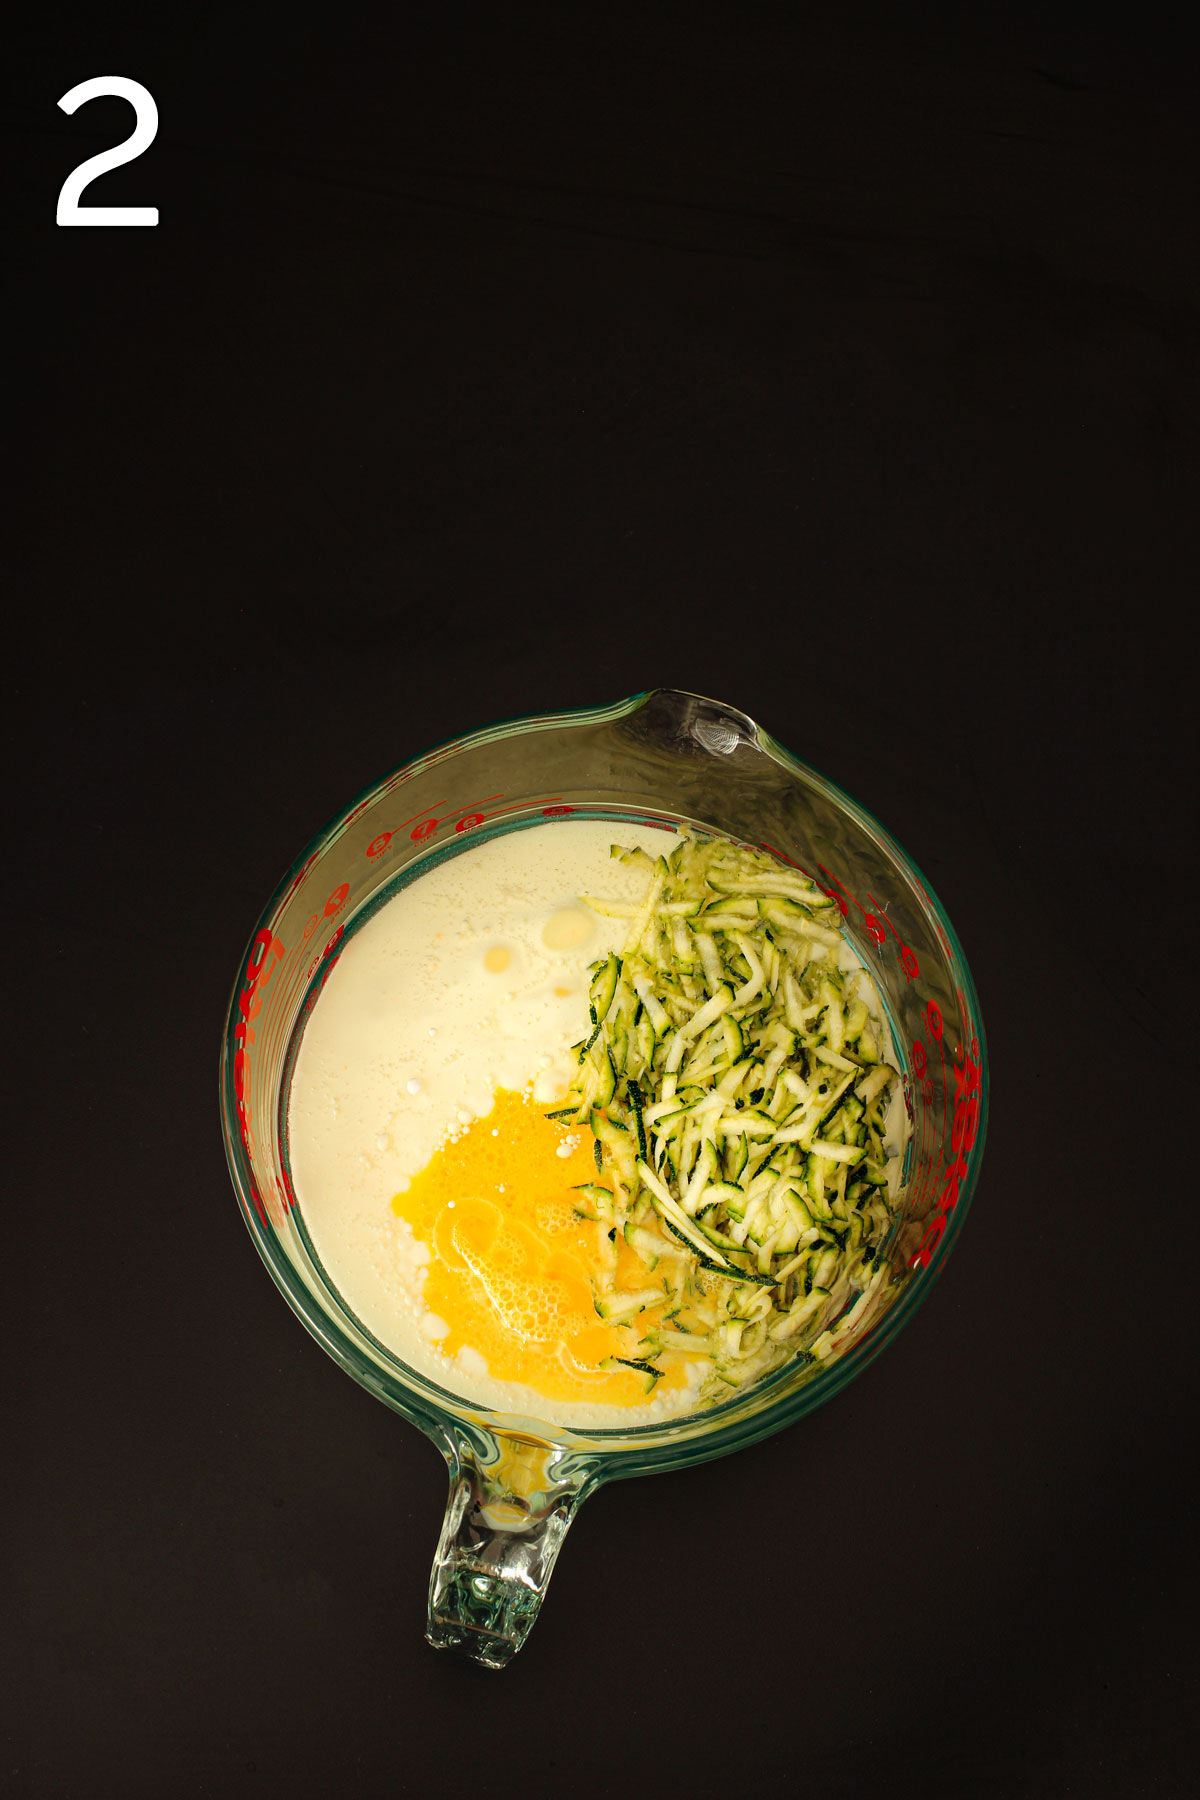 buttermilk, oil, eggs, and zucchini in pyrex mixing bowl.